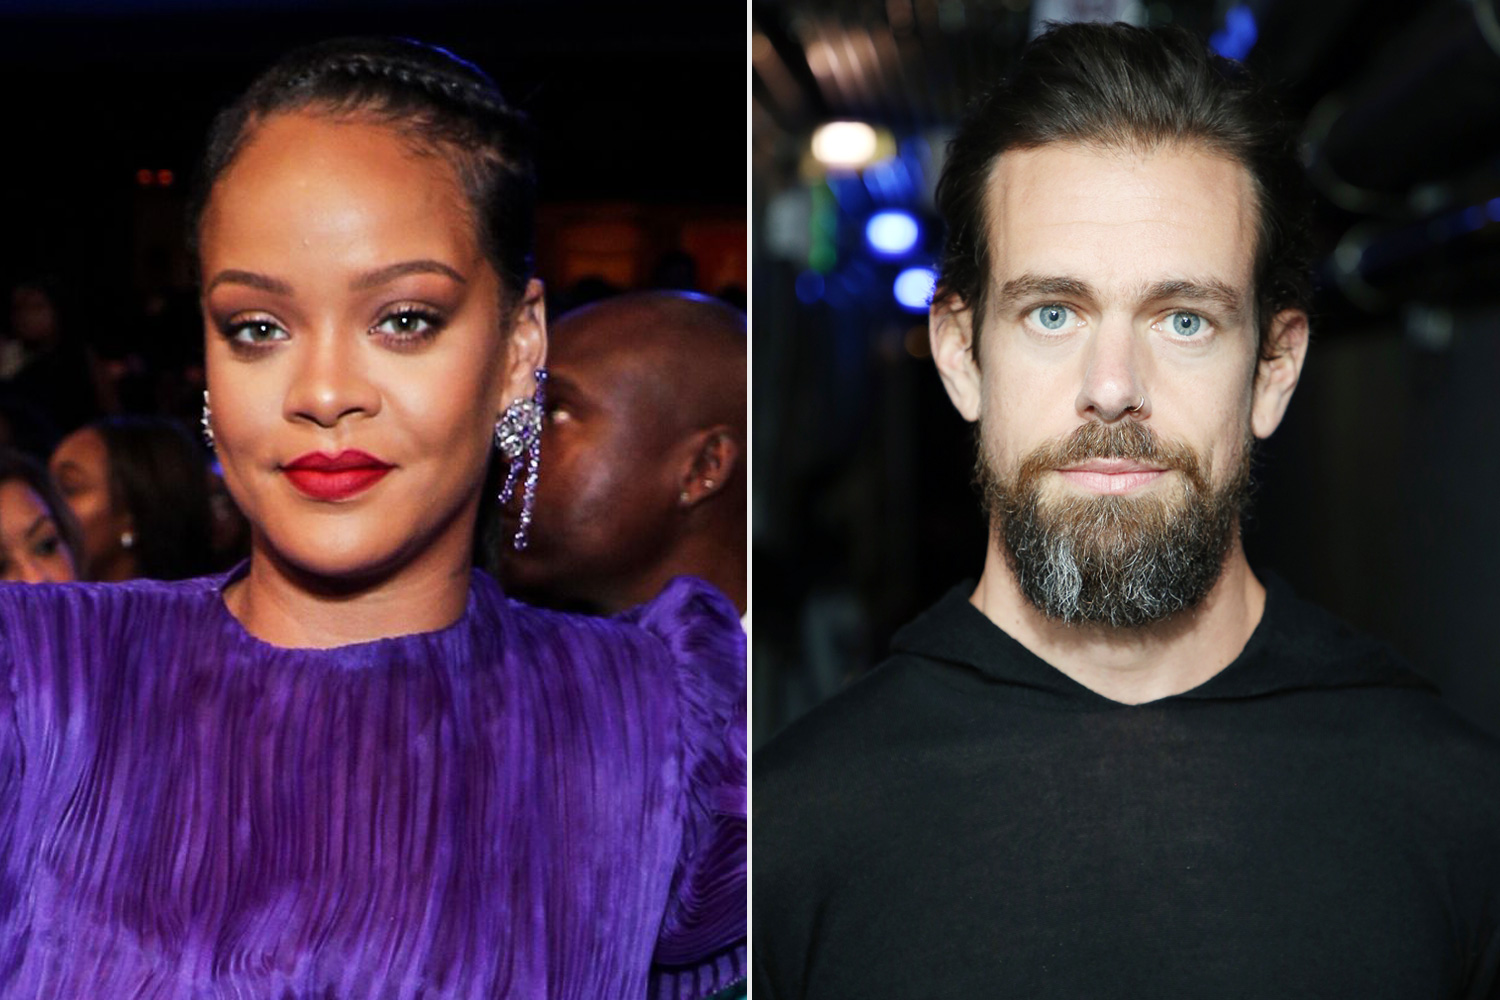 Rihanna and Twitter CEO to Donate $4.2 Million to Help Domestic Violence Victims in Los Angeles